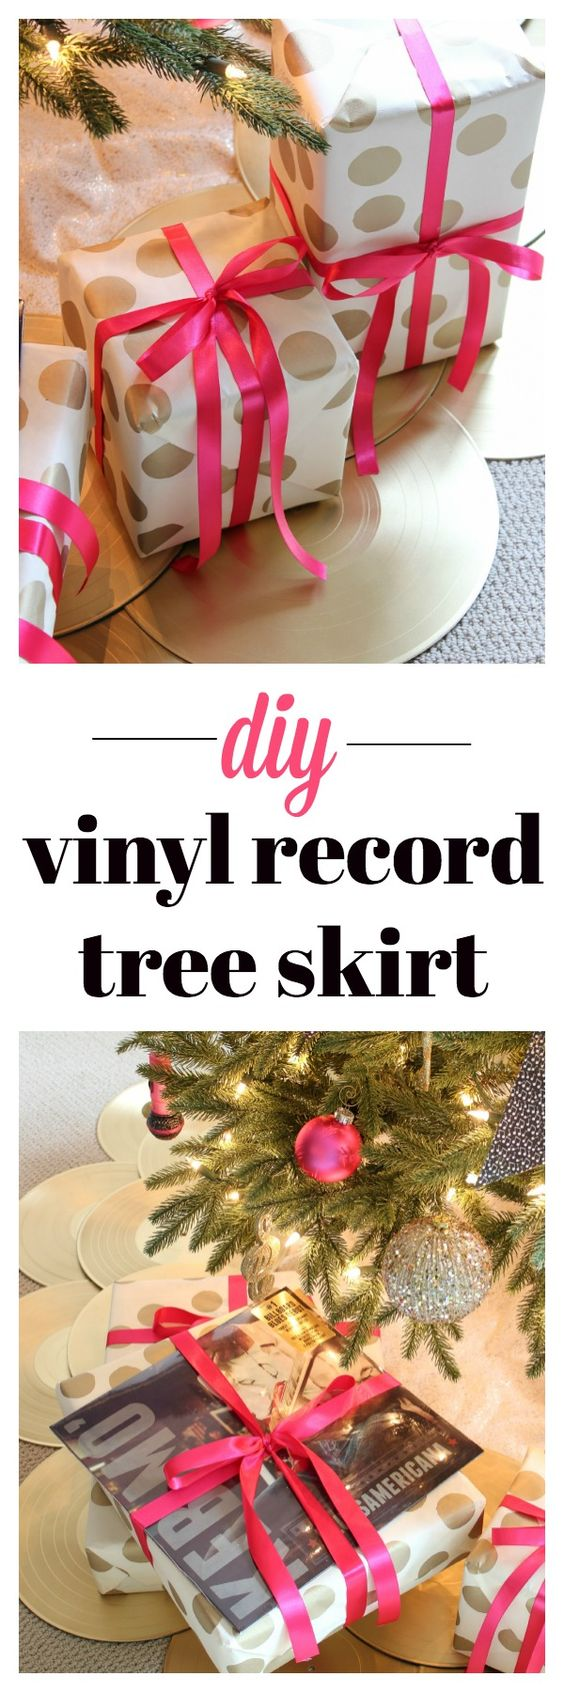 This is a great Christmas decorating idea for music lovers! Very easy and you don't even have to paint the records if you don't want to! DIY Vinyl Record Tree Skirt